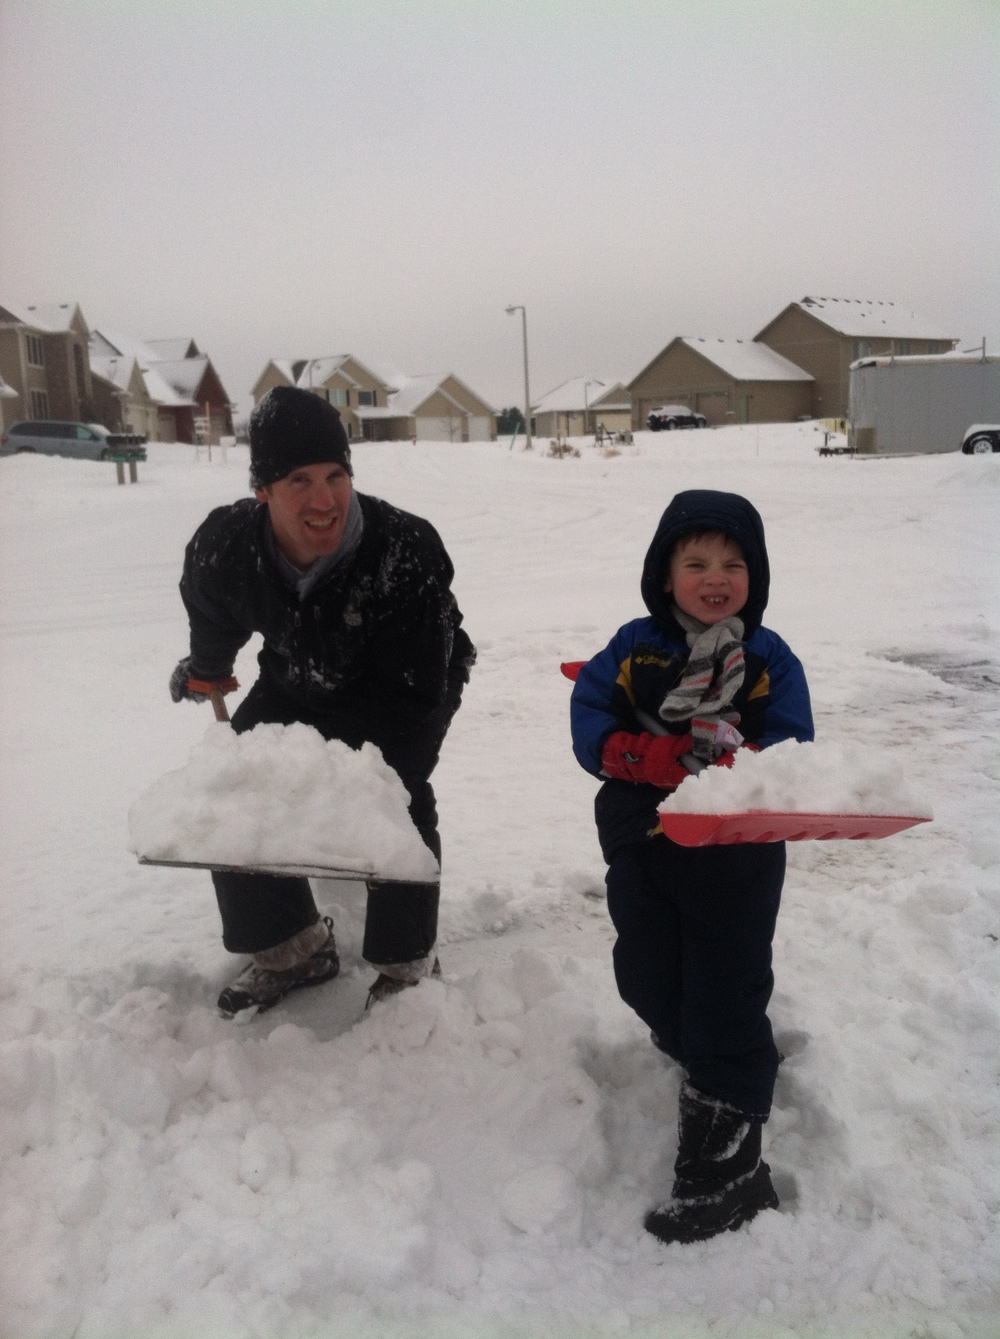 Shoveling_snow_with_Finn_2013.jpg